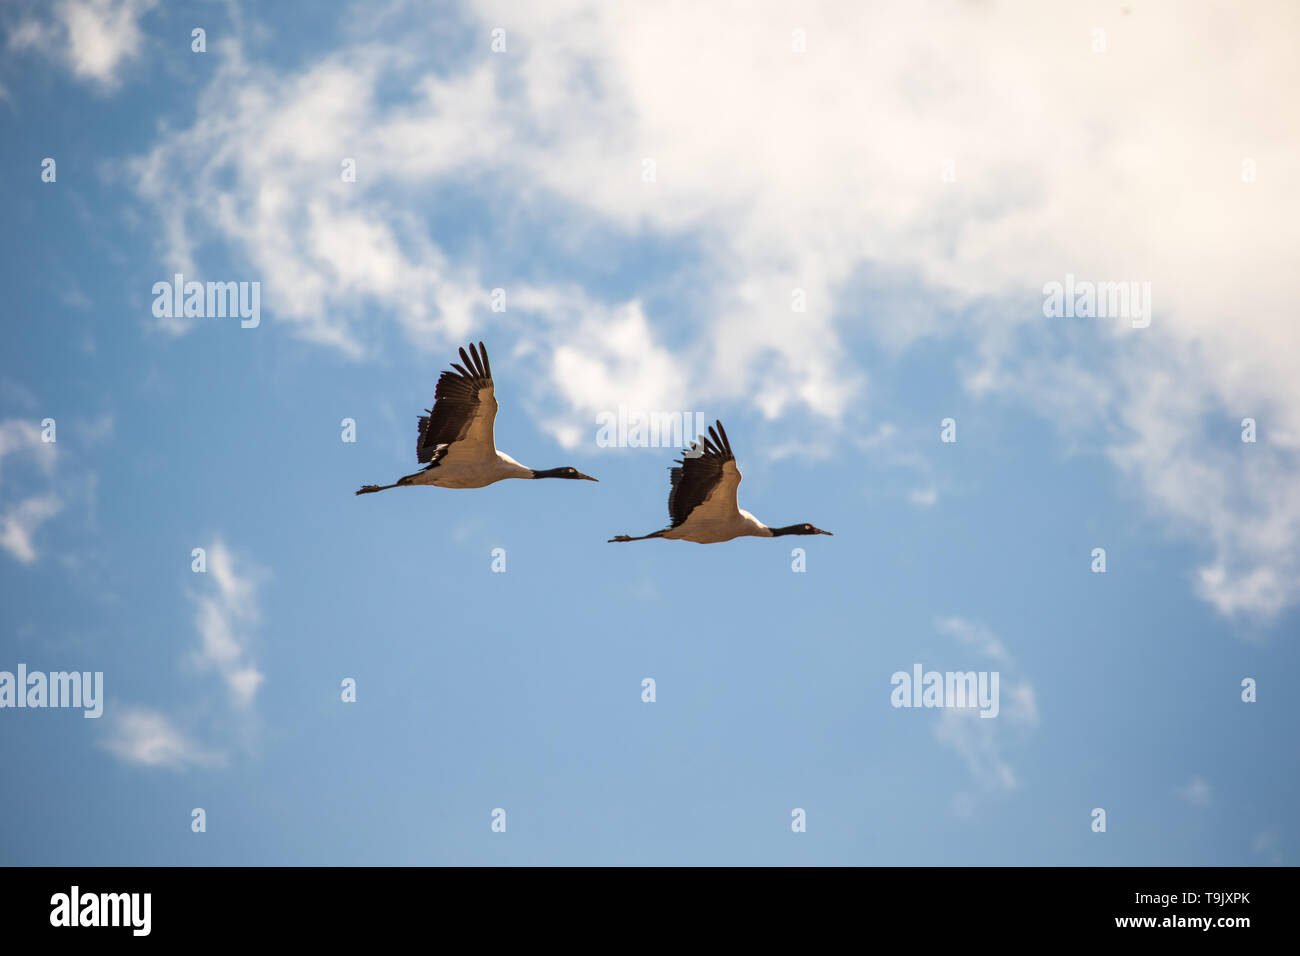 Two black-necked cranes spreading their wings in flight - Stock Image